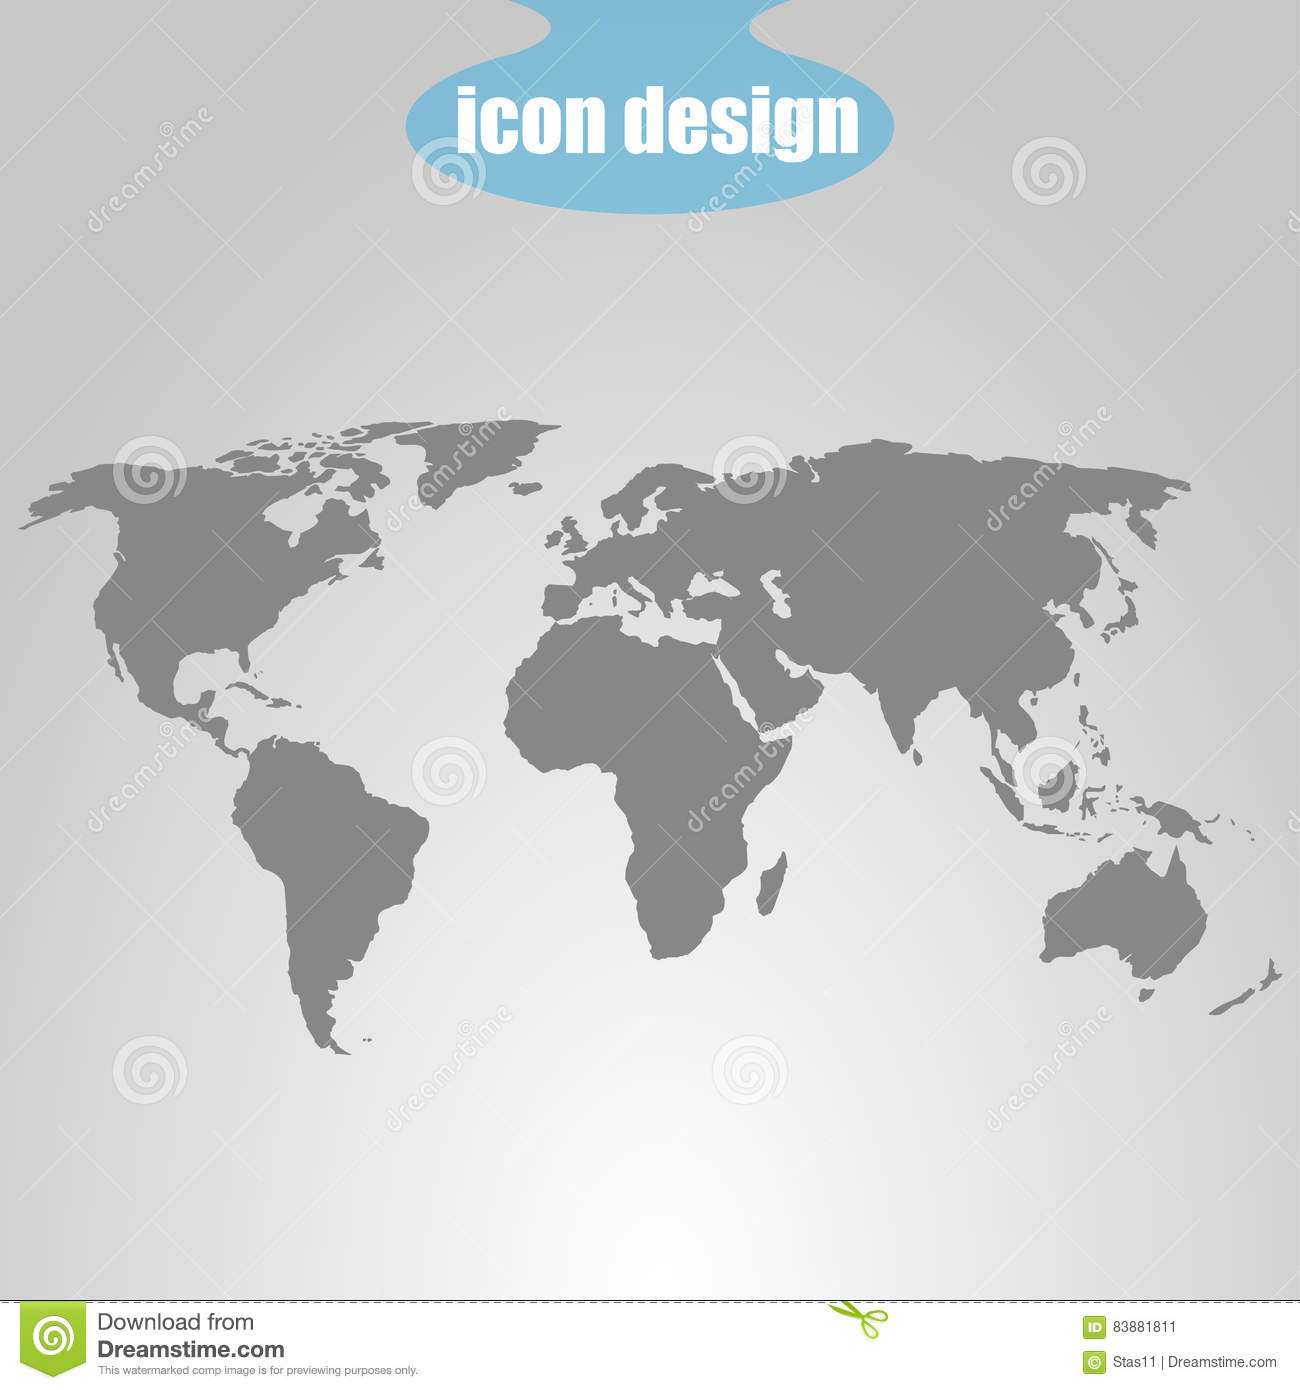 Icon of world map on a gray background vector illustration stock download comp gumiabroncs Image collections